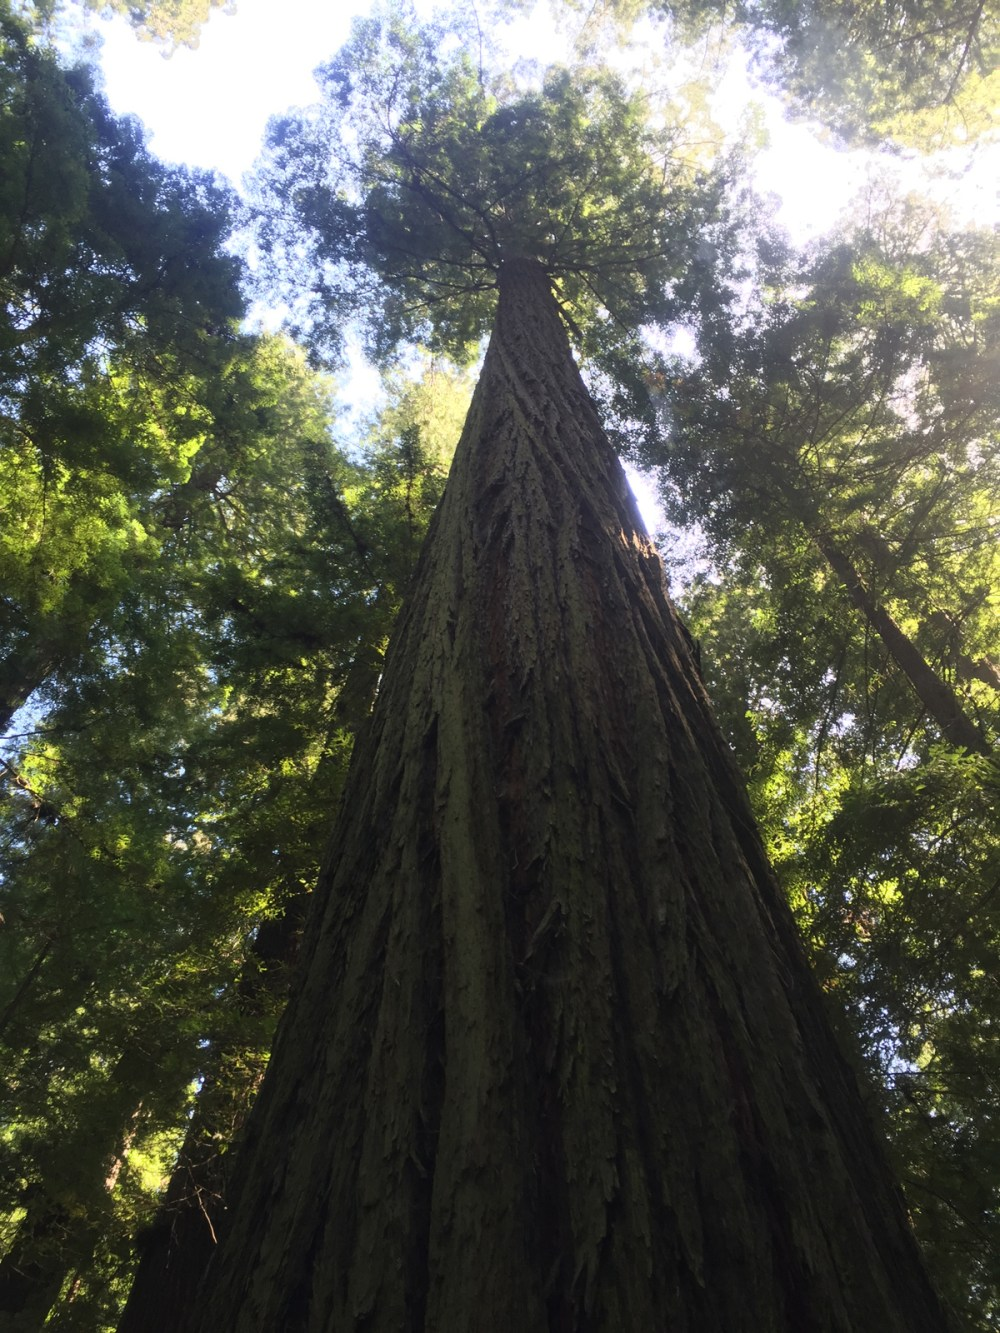 Bucket List View - Giant Redwood Trees